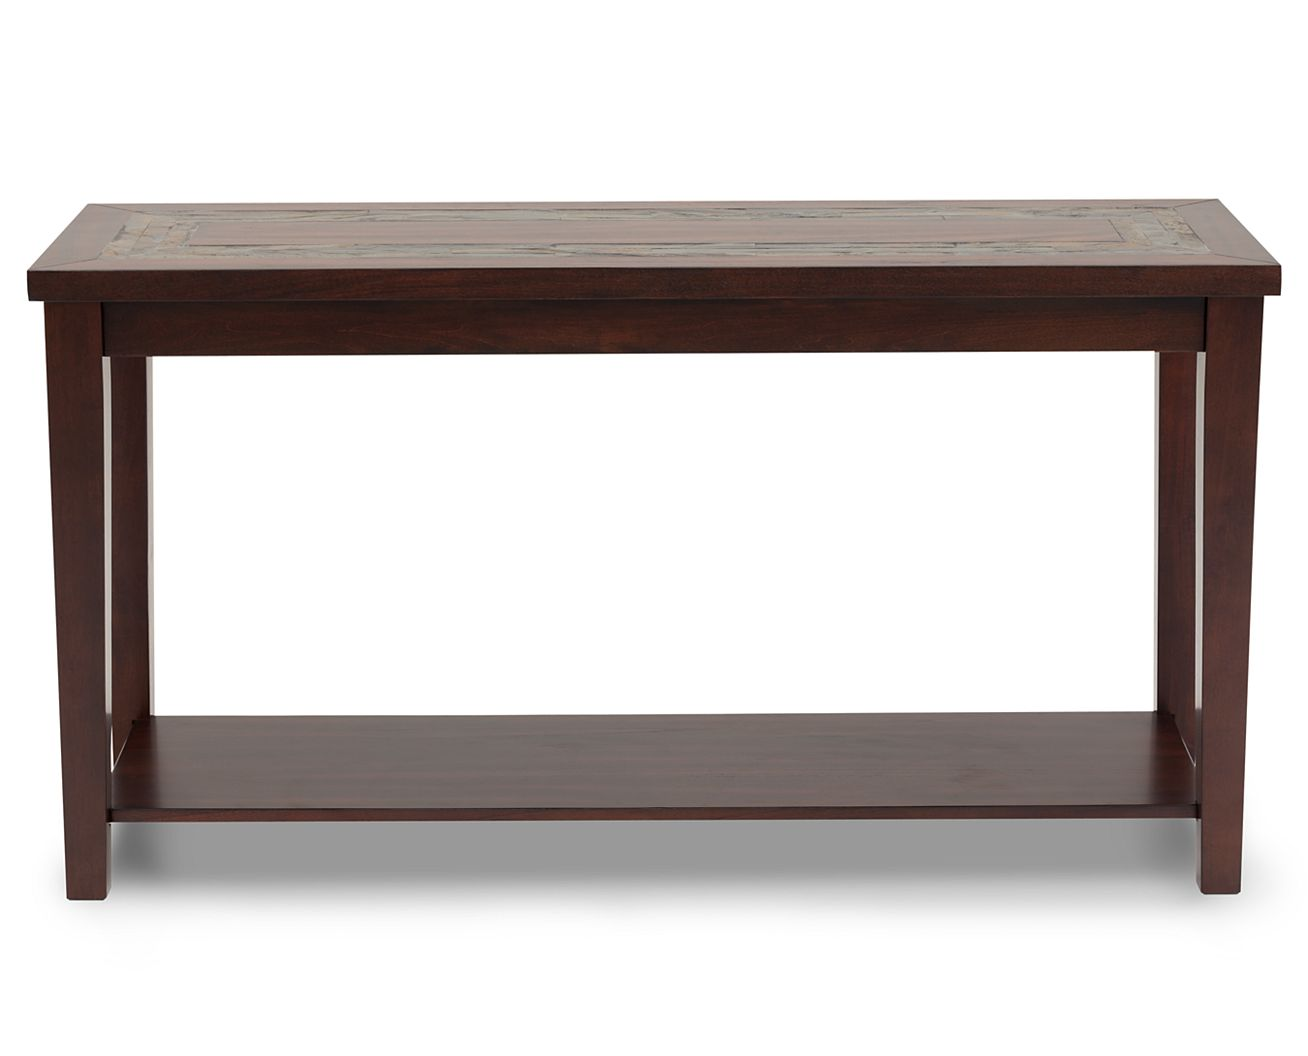 Sofa Tables Davenport Sofa Table Features a real slate inlay